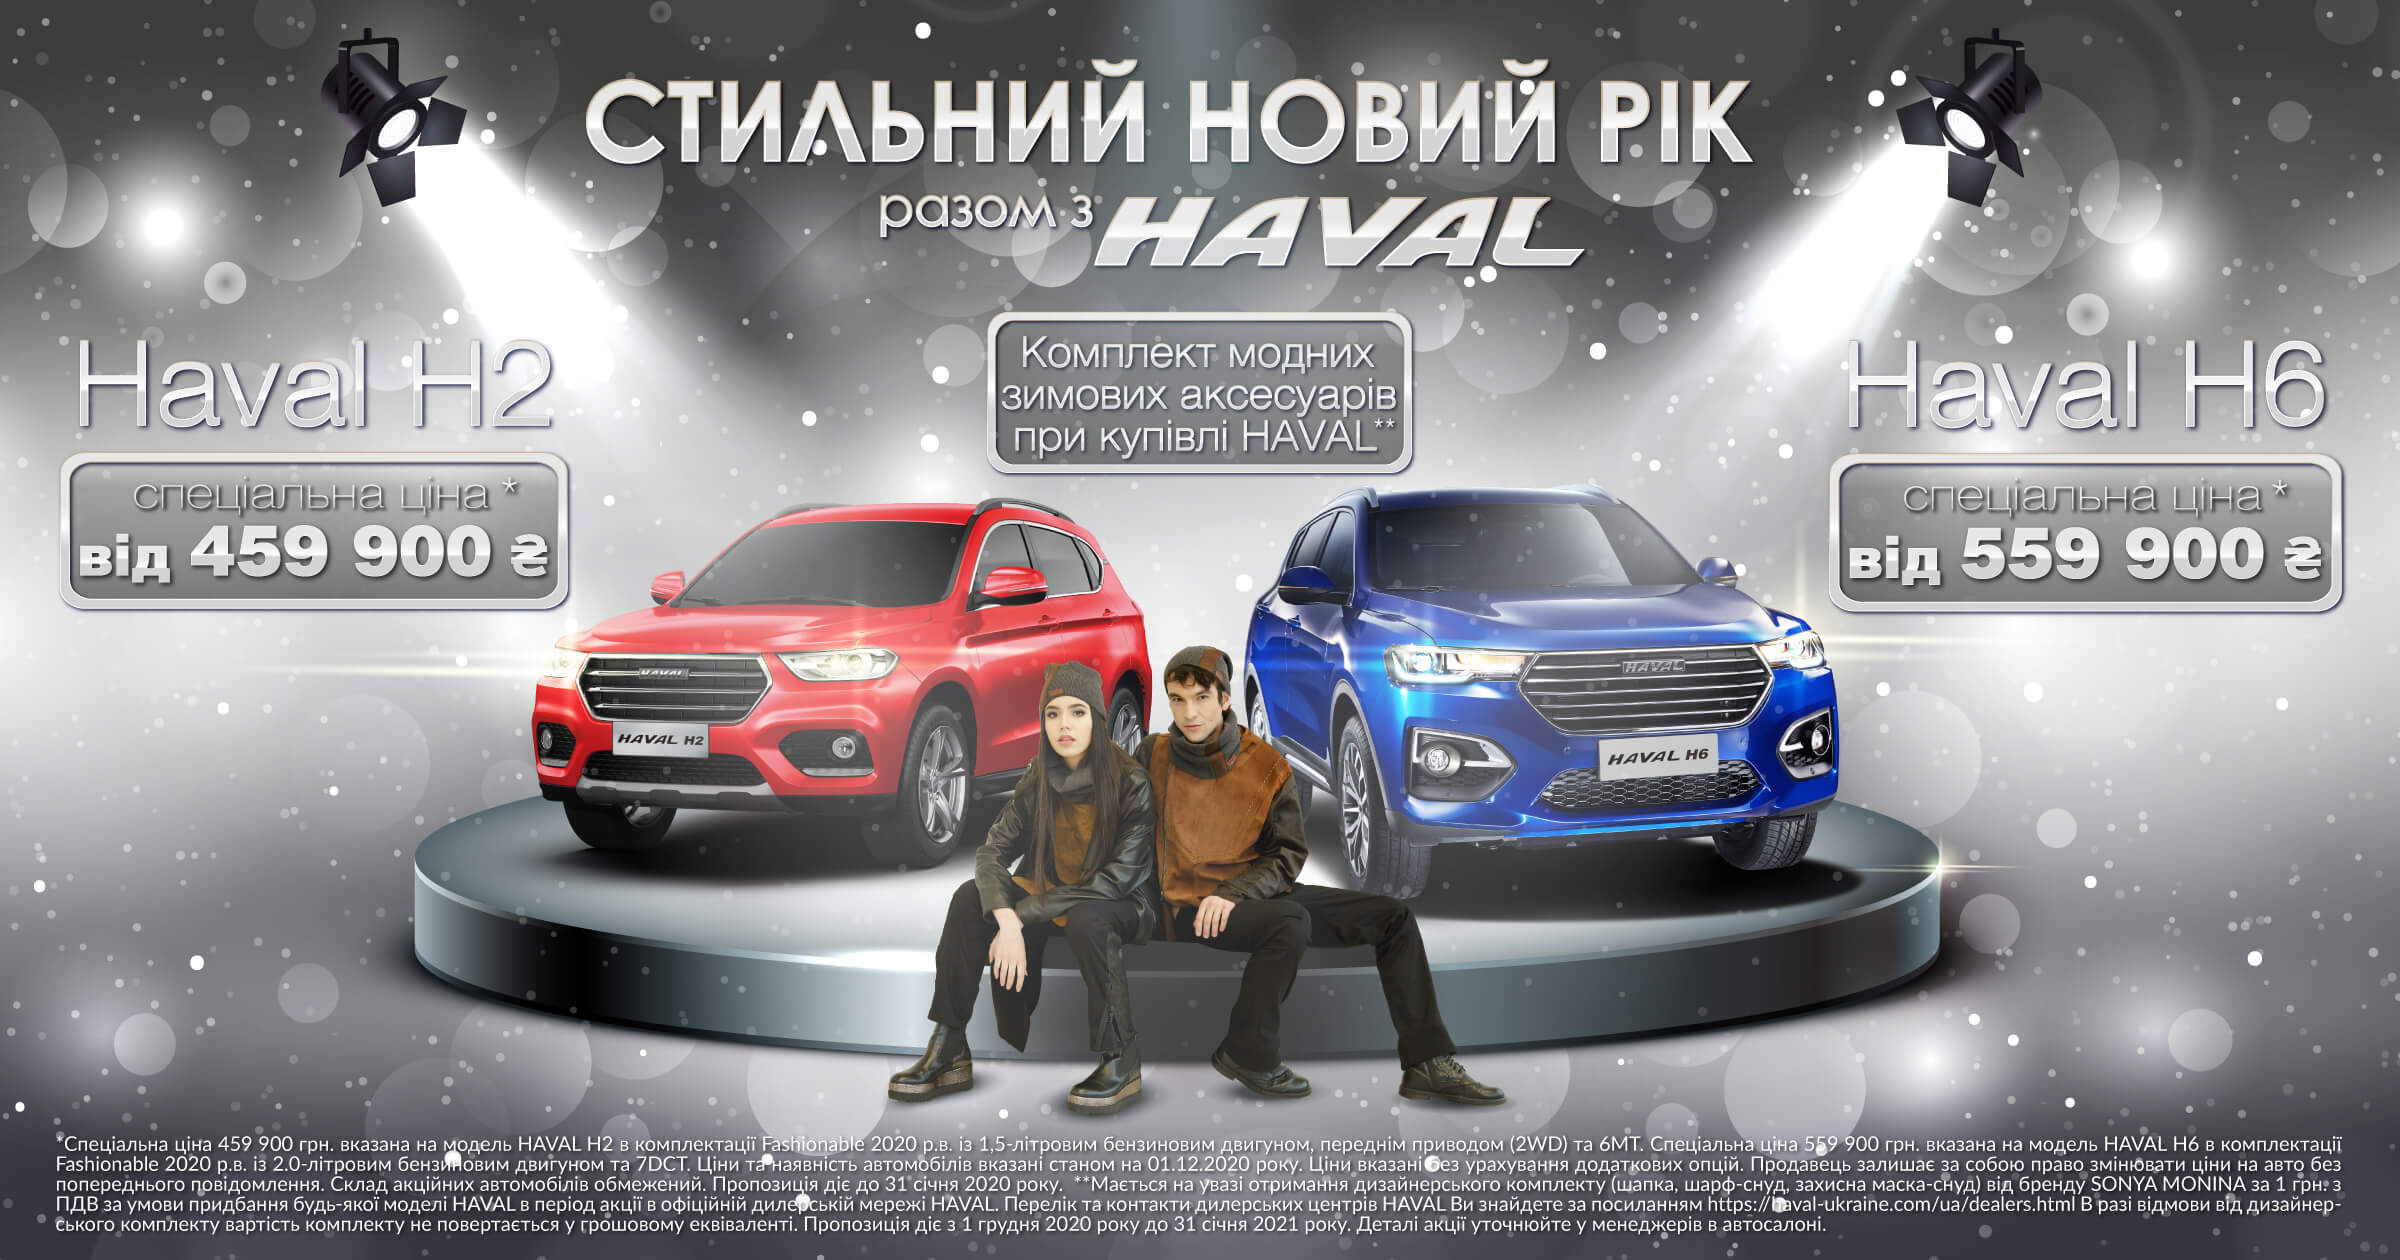 Haval fashion